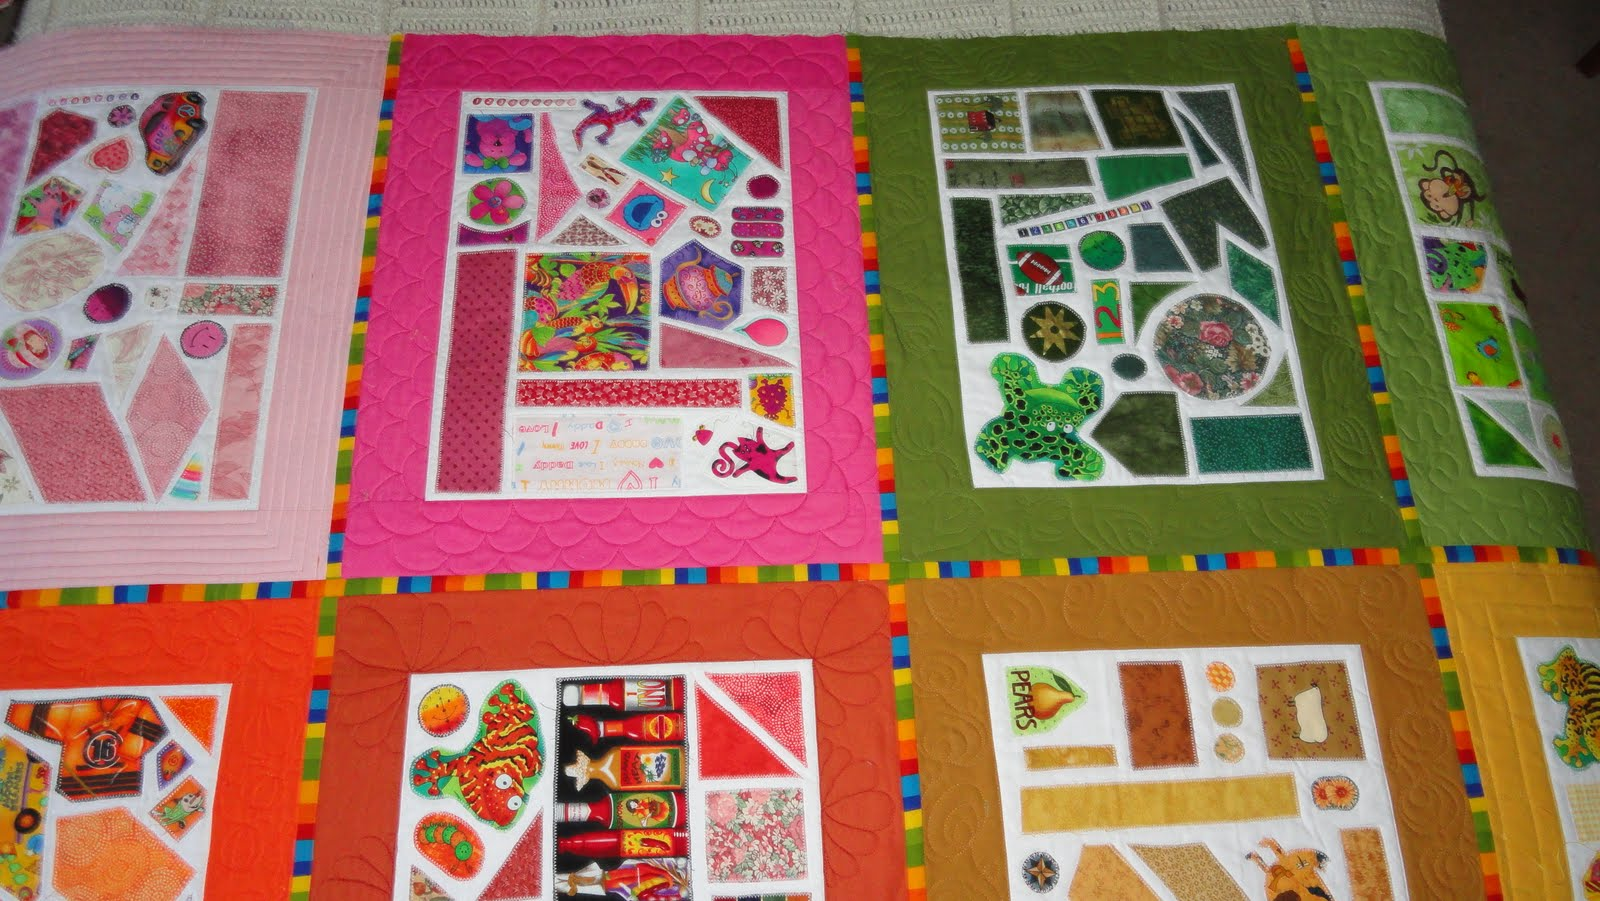 Quilt As You Go Tutorials: QAYG Video and 26 Quilt Tutorials : sew as you go quilts - Adamdwight.com